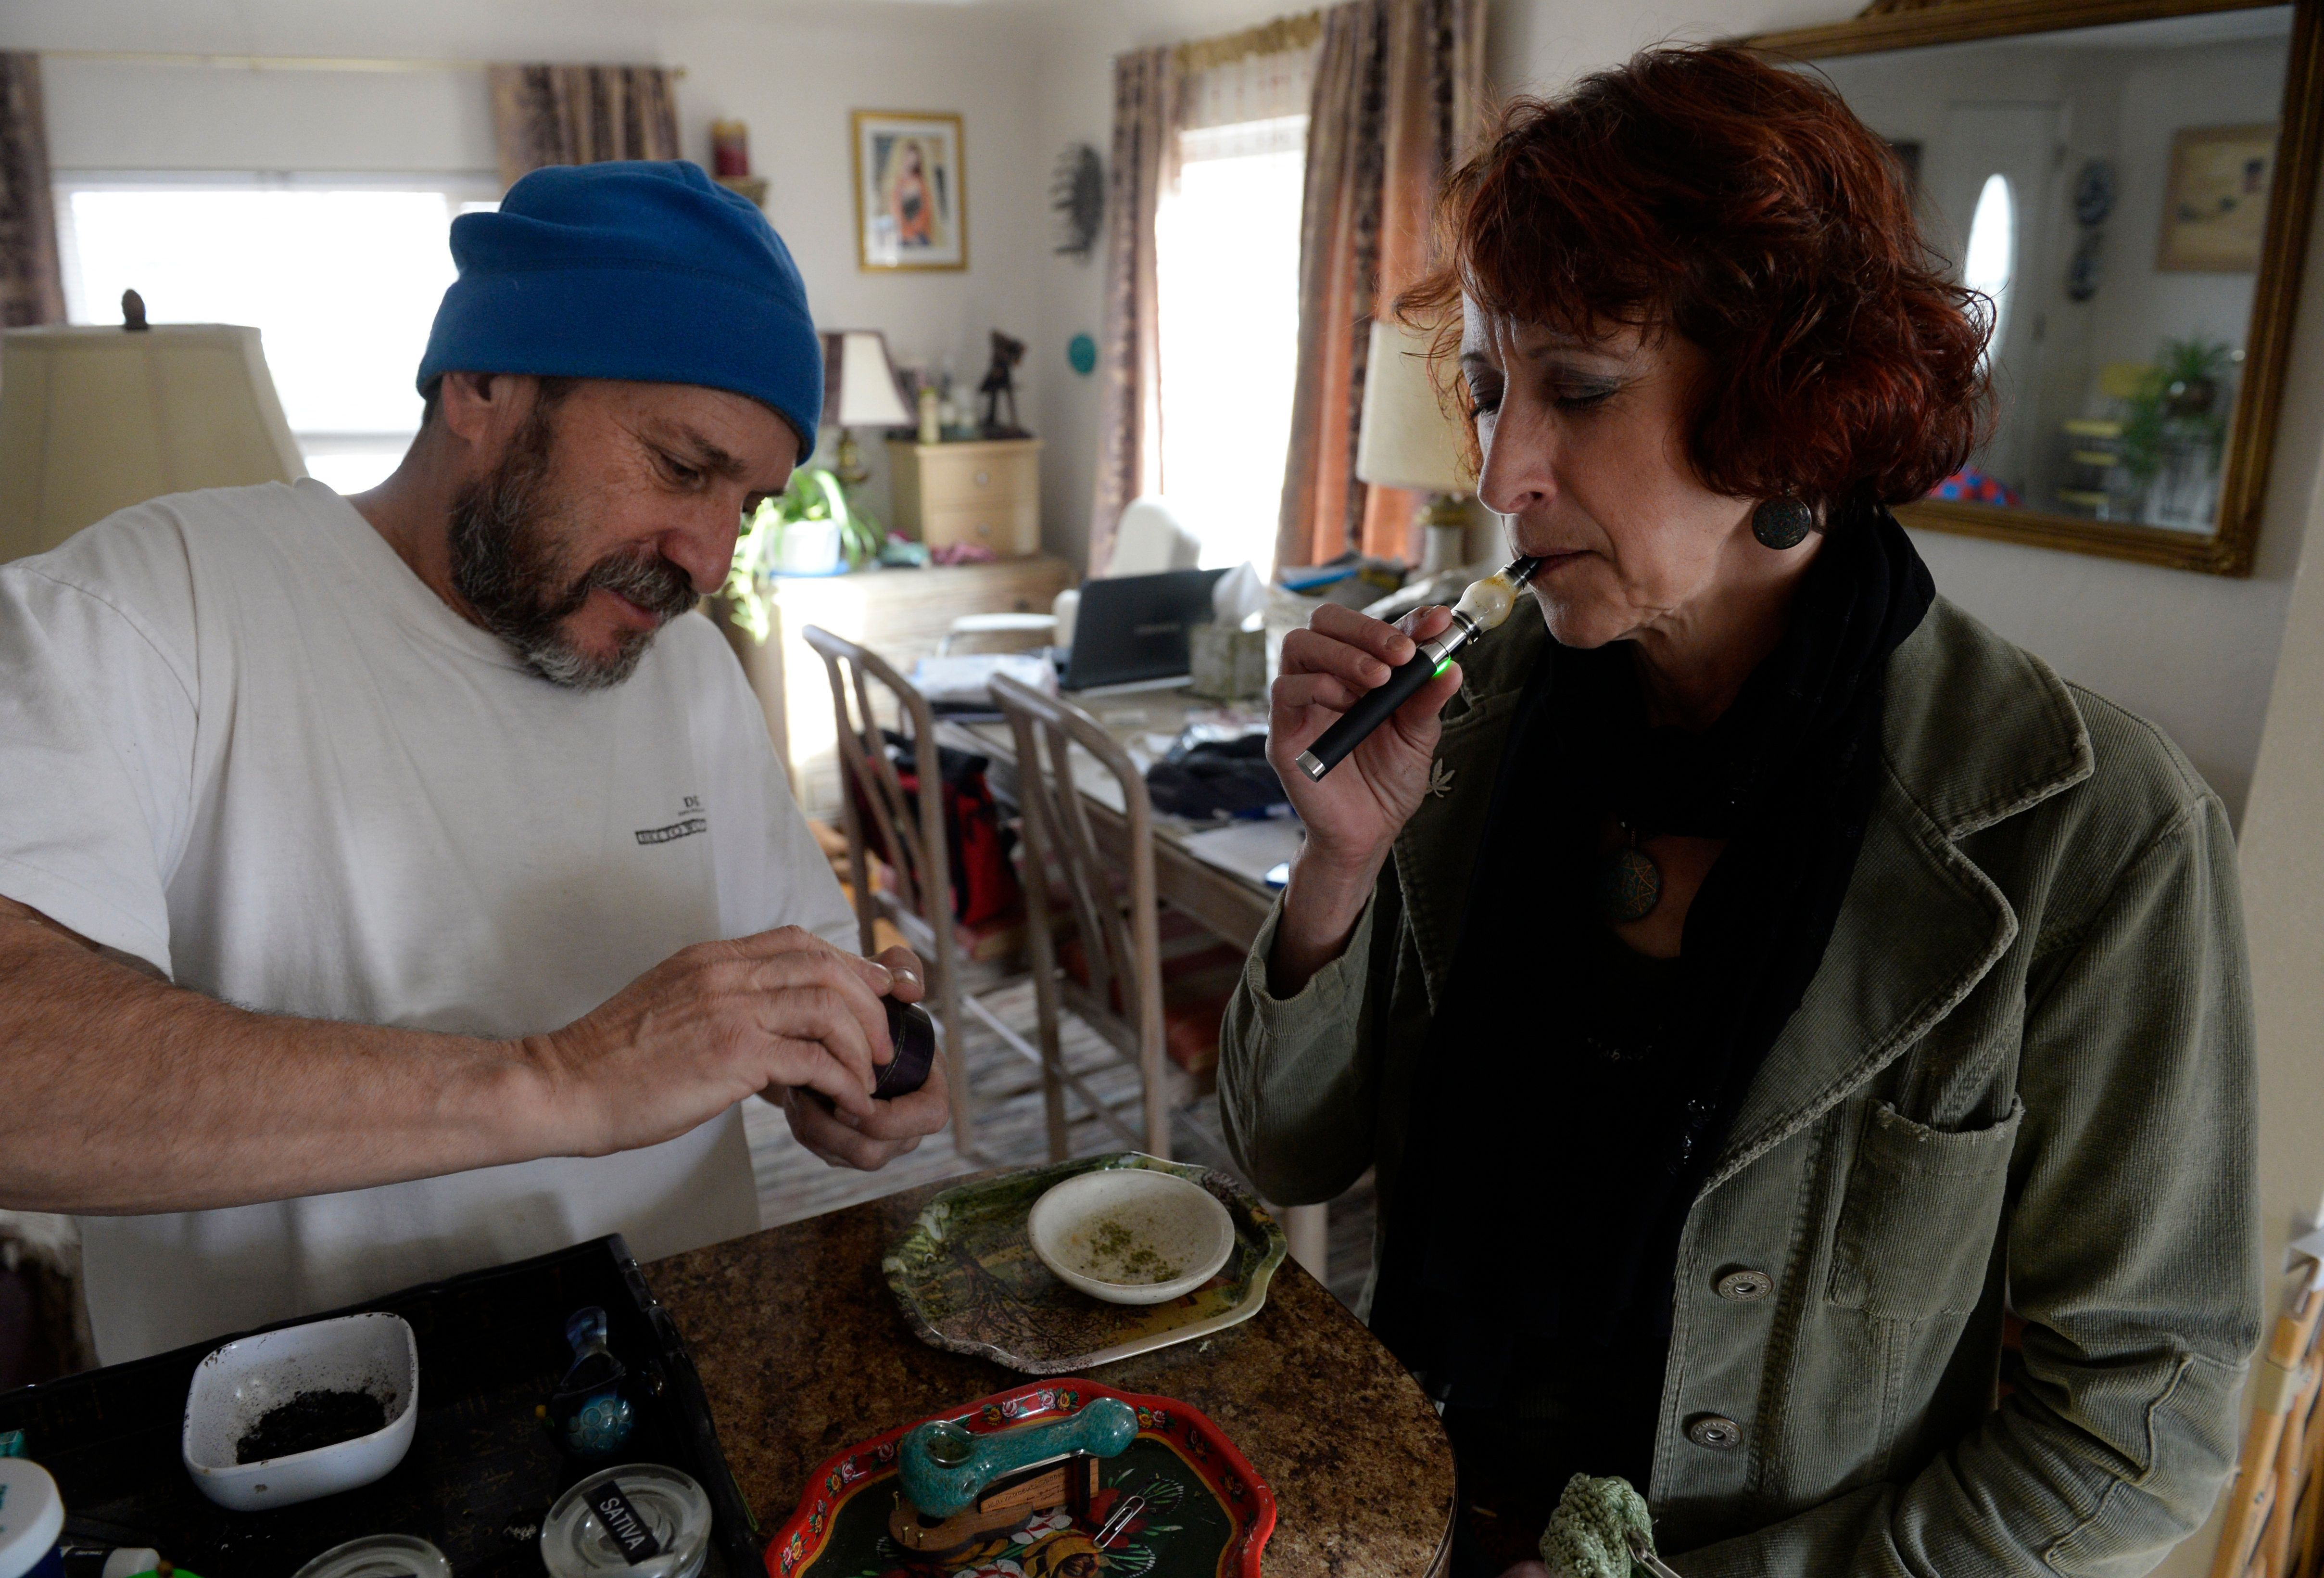 DENVER, CO - DECEMBER 16: Medical marijuana patient, Teri Robnett, right, uses a vape pen, vaporizing cannabinoids to manage cronic fibromyalgia December 16, 2014. Her husband, Greg Duran, uses a grinder to grind marijuana to use in a larger vaporizer machine for Teri, who medicates throughout the day. (Photo by Andy Cross/The Denver Post via Getty Images)